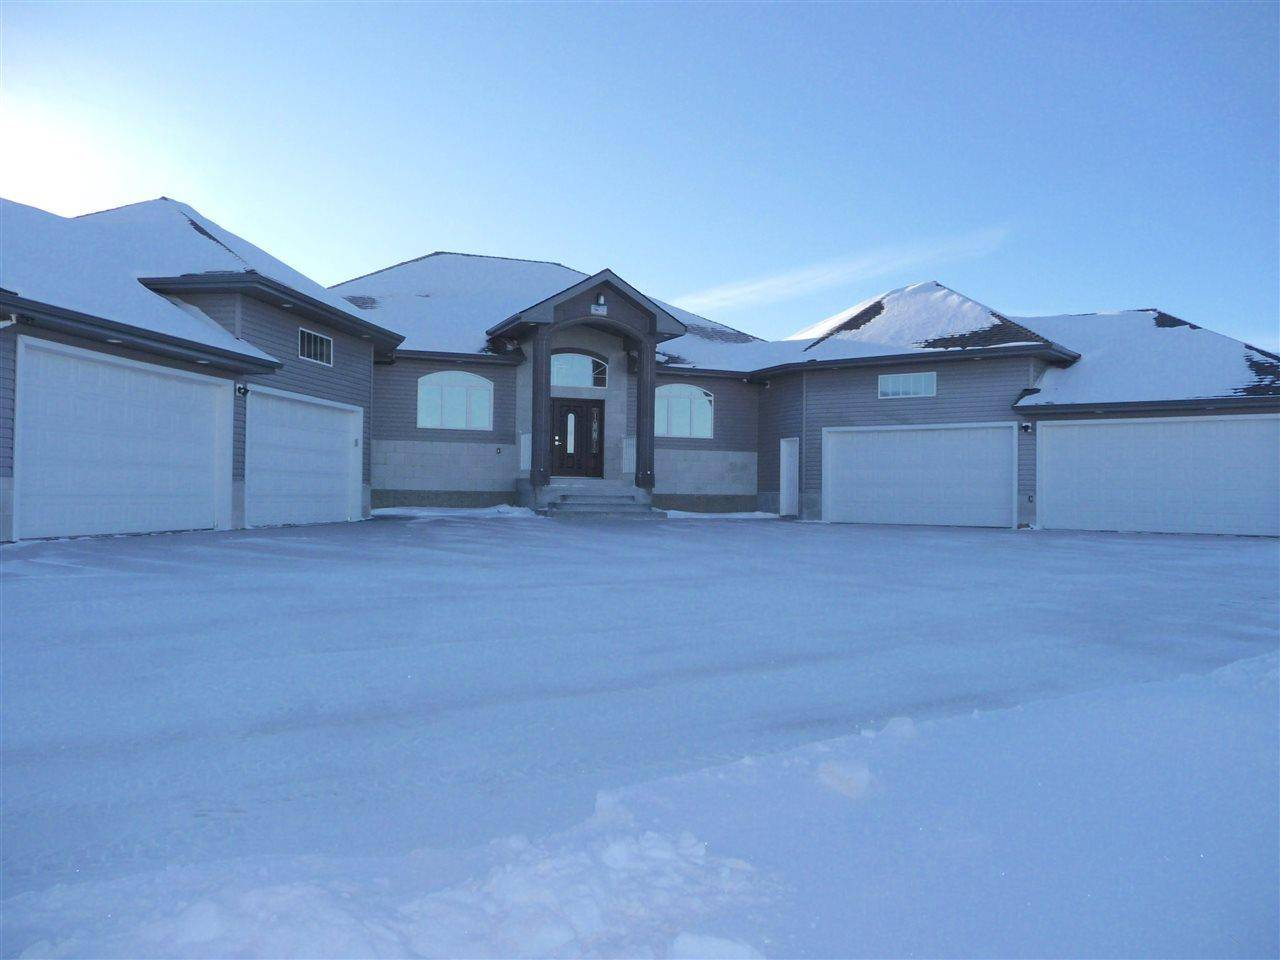 House for sale at 51174 Rge Rd Rural Strathcona County Alberta - MLS: E4182237